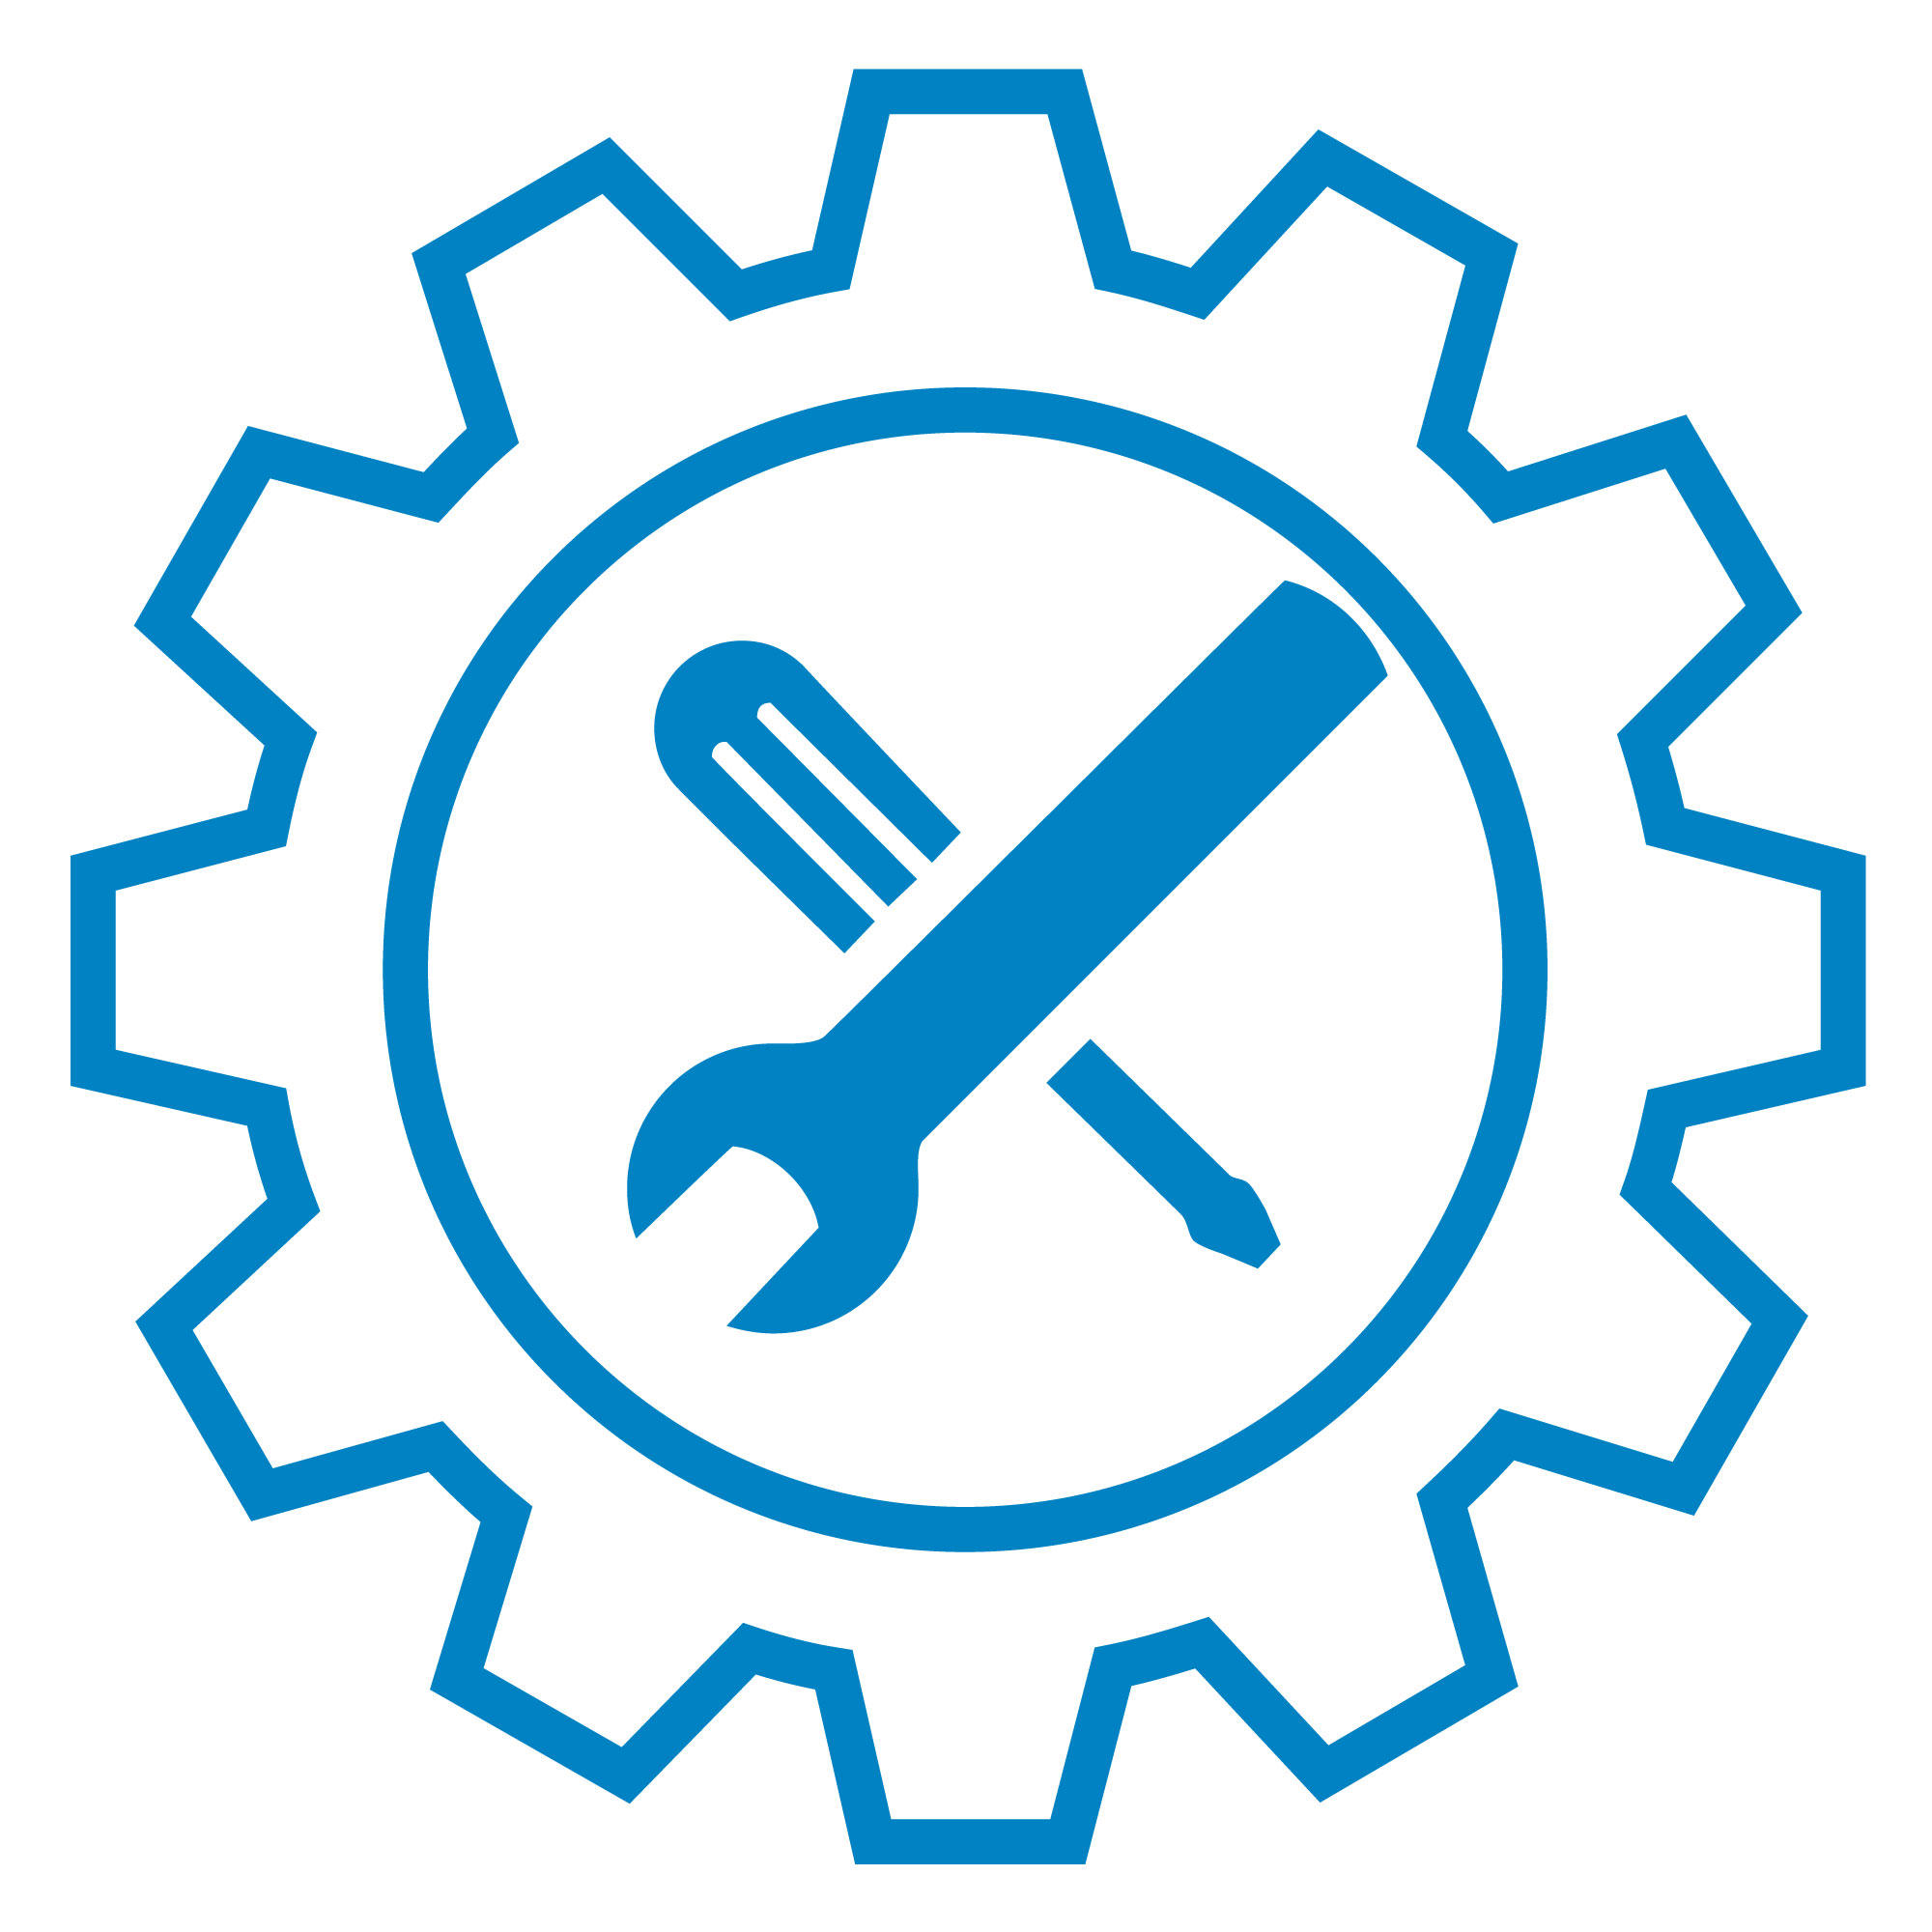 Decathlon provide inspection and bike repair service